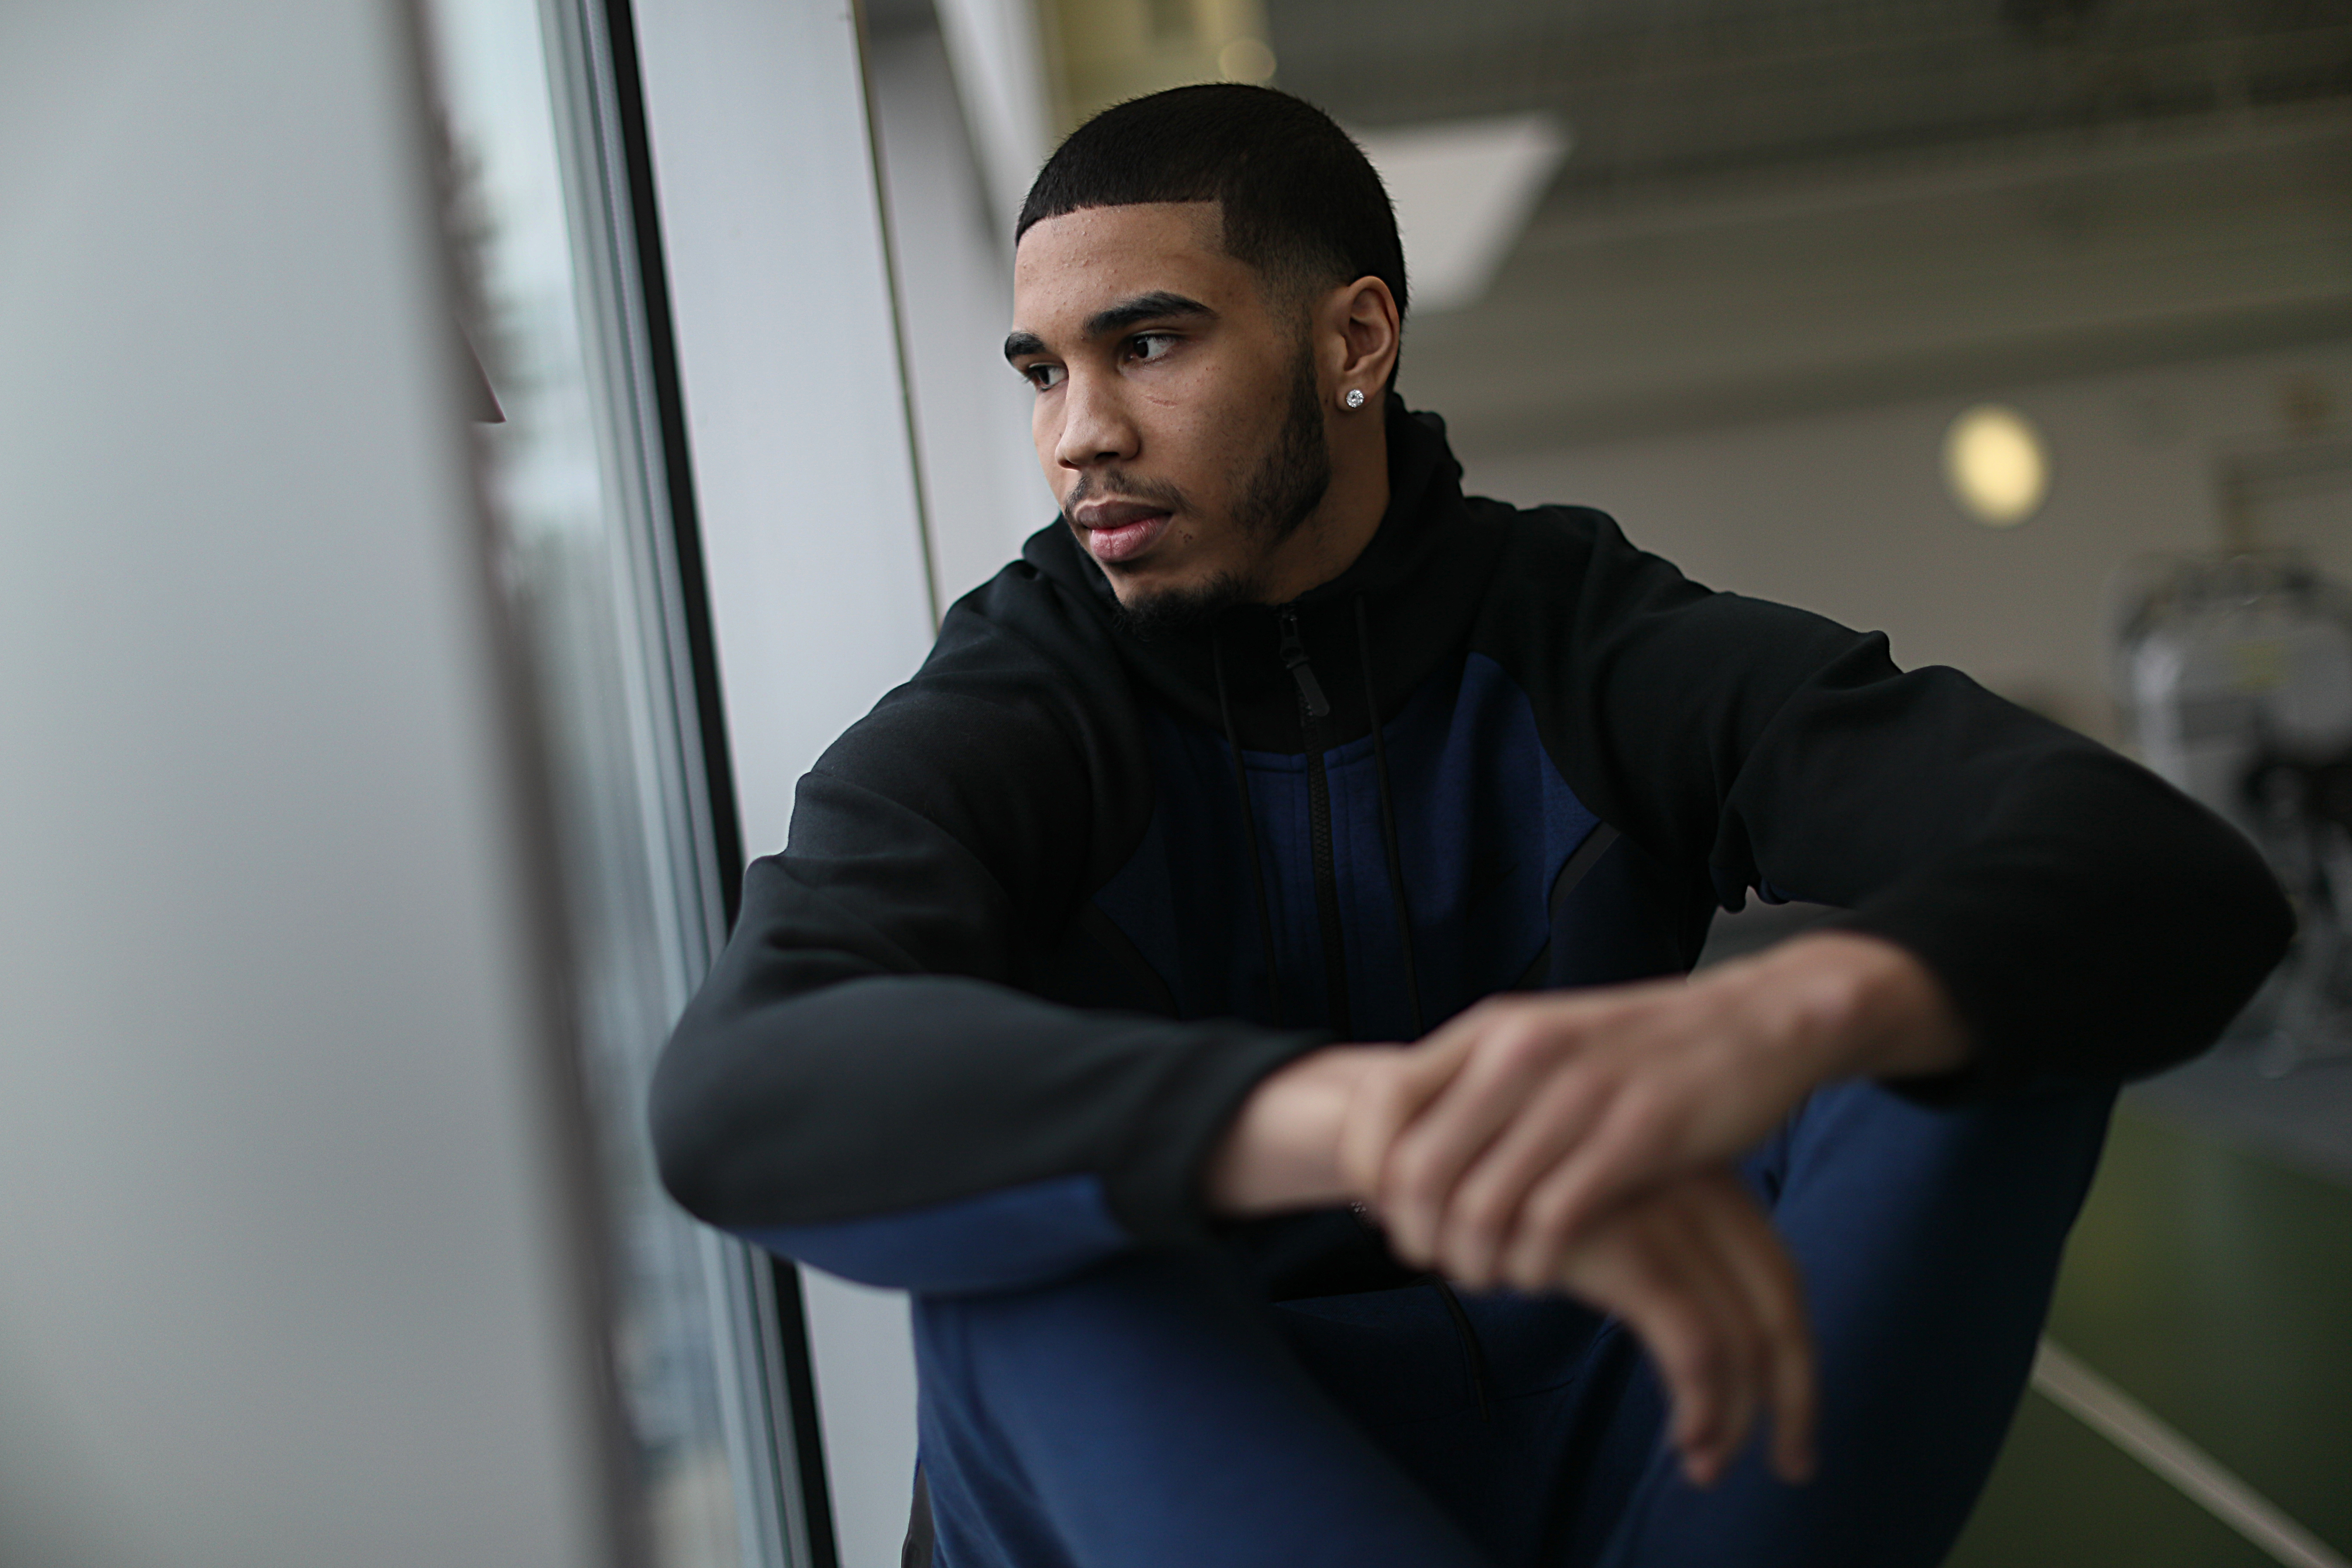 outlet store 4e2cd ee6be Jayson Tatum is at the door. 'He has a passion to be great ...